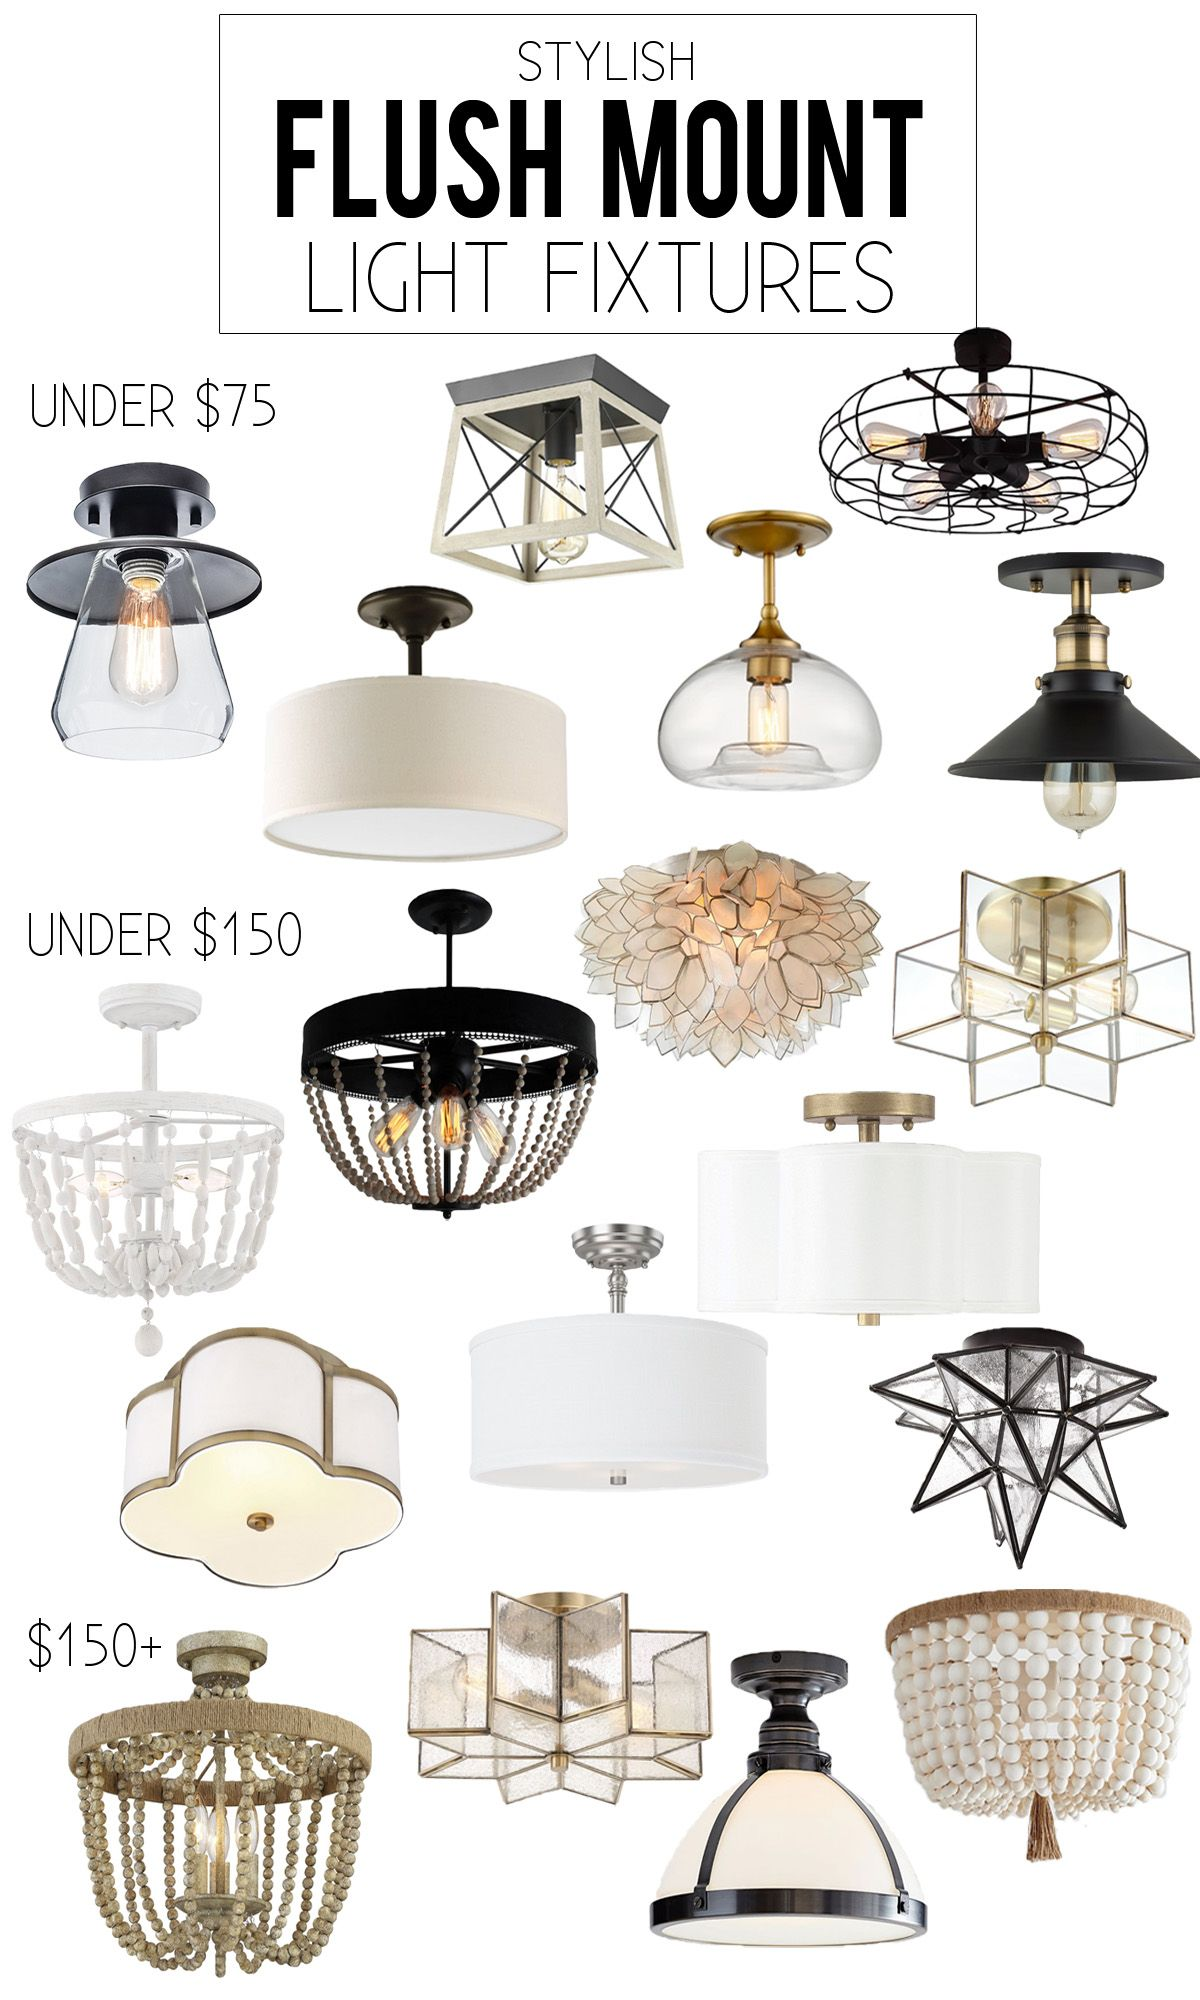 Stylish Collection Of Flush Mount Light Fixtures Life On